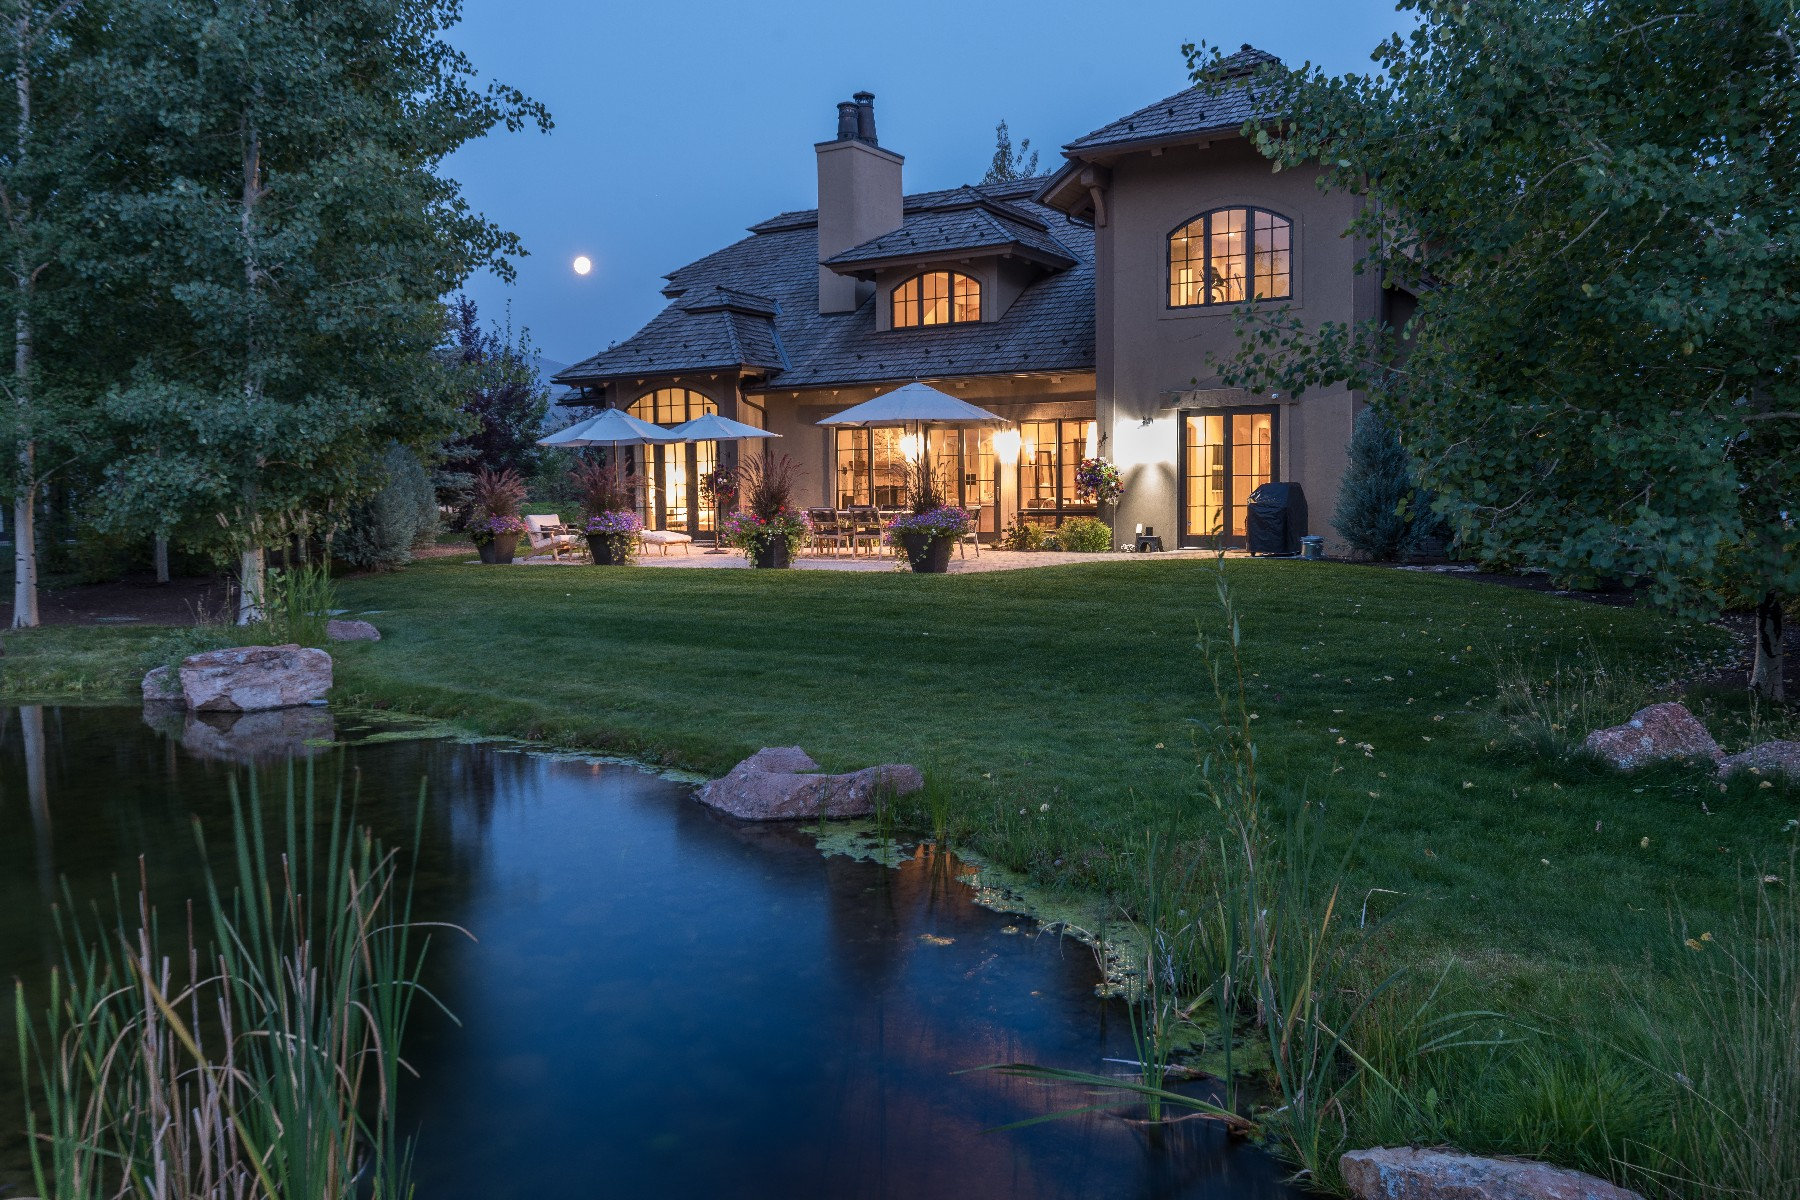 Single Family Home for Active at Luxury At It's Finest 21 Streamside Drive Hailey, Idaho 83333 United States